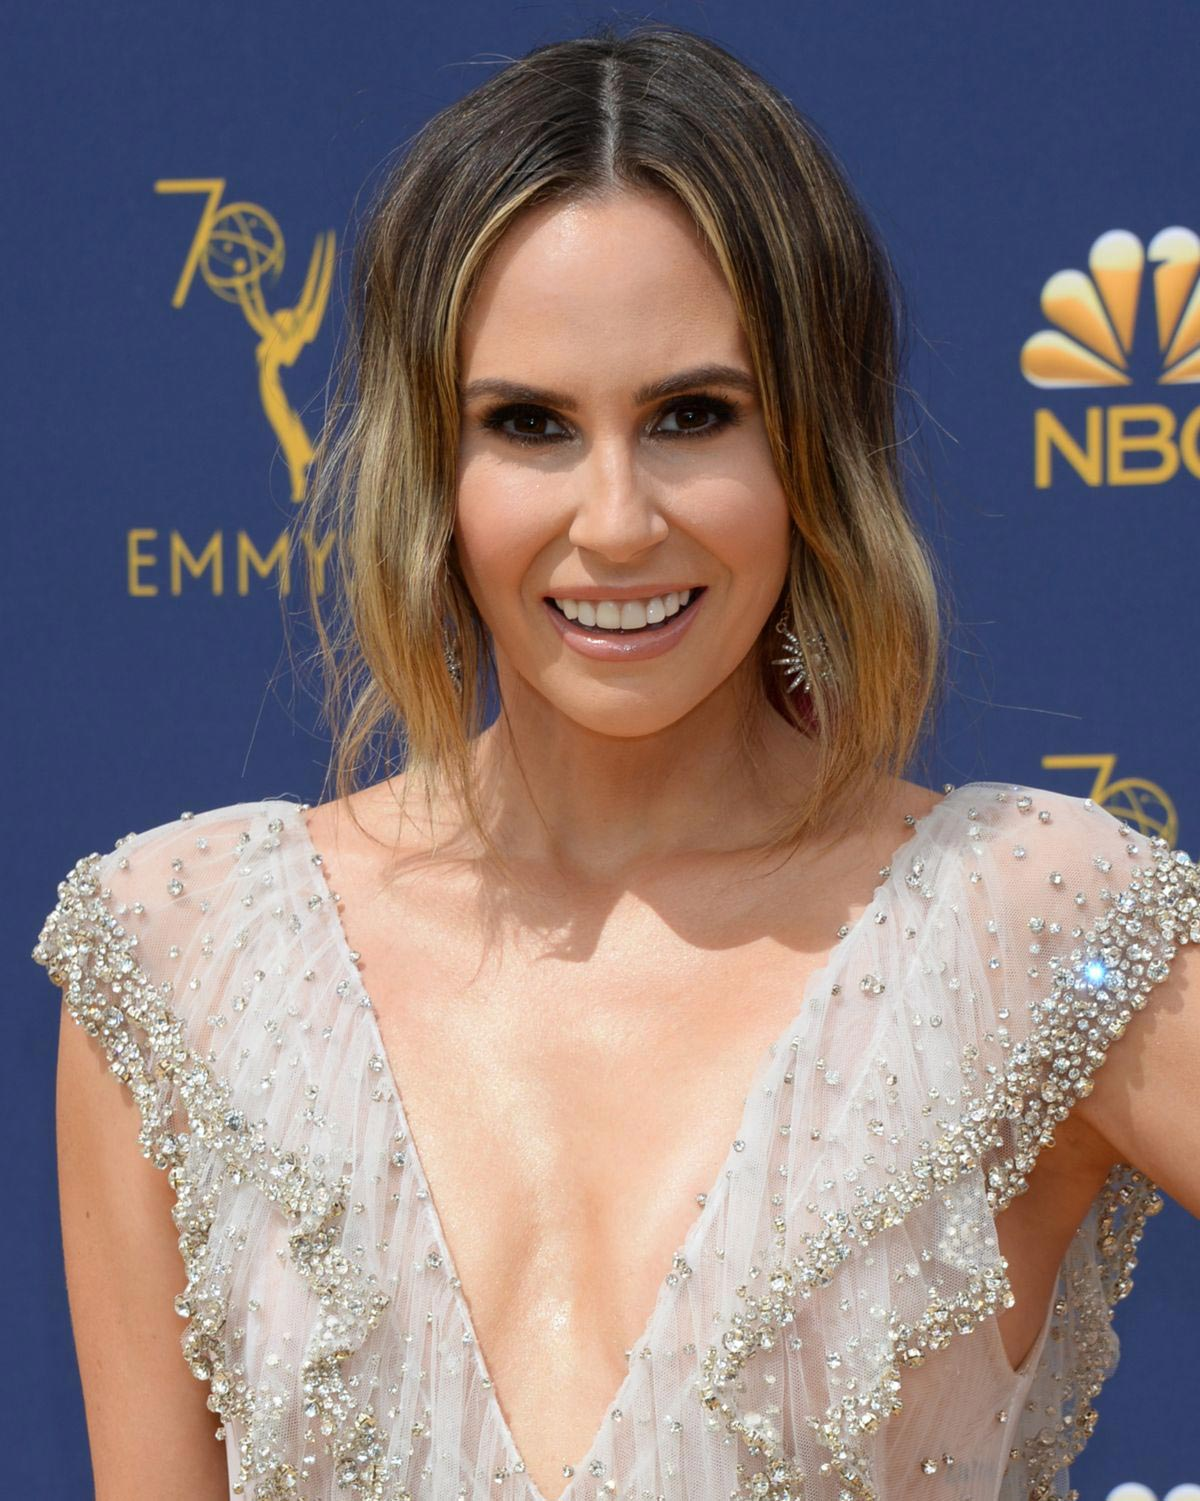 Keltie Knight at Emmy Awards 2018 in Los Angeles 2018/09/17 1